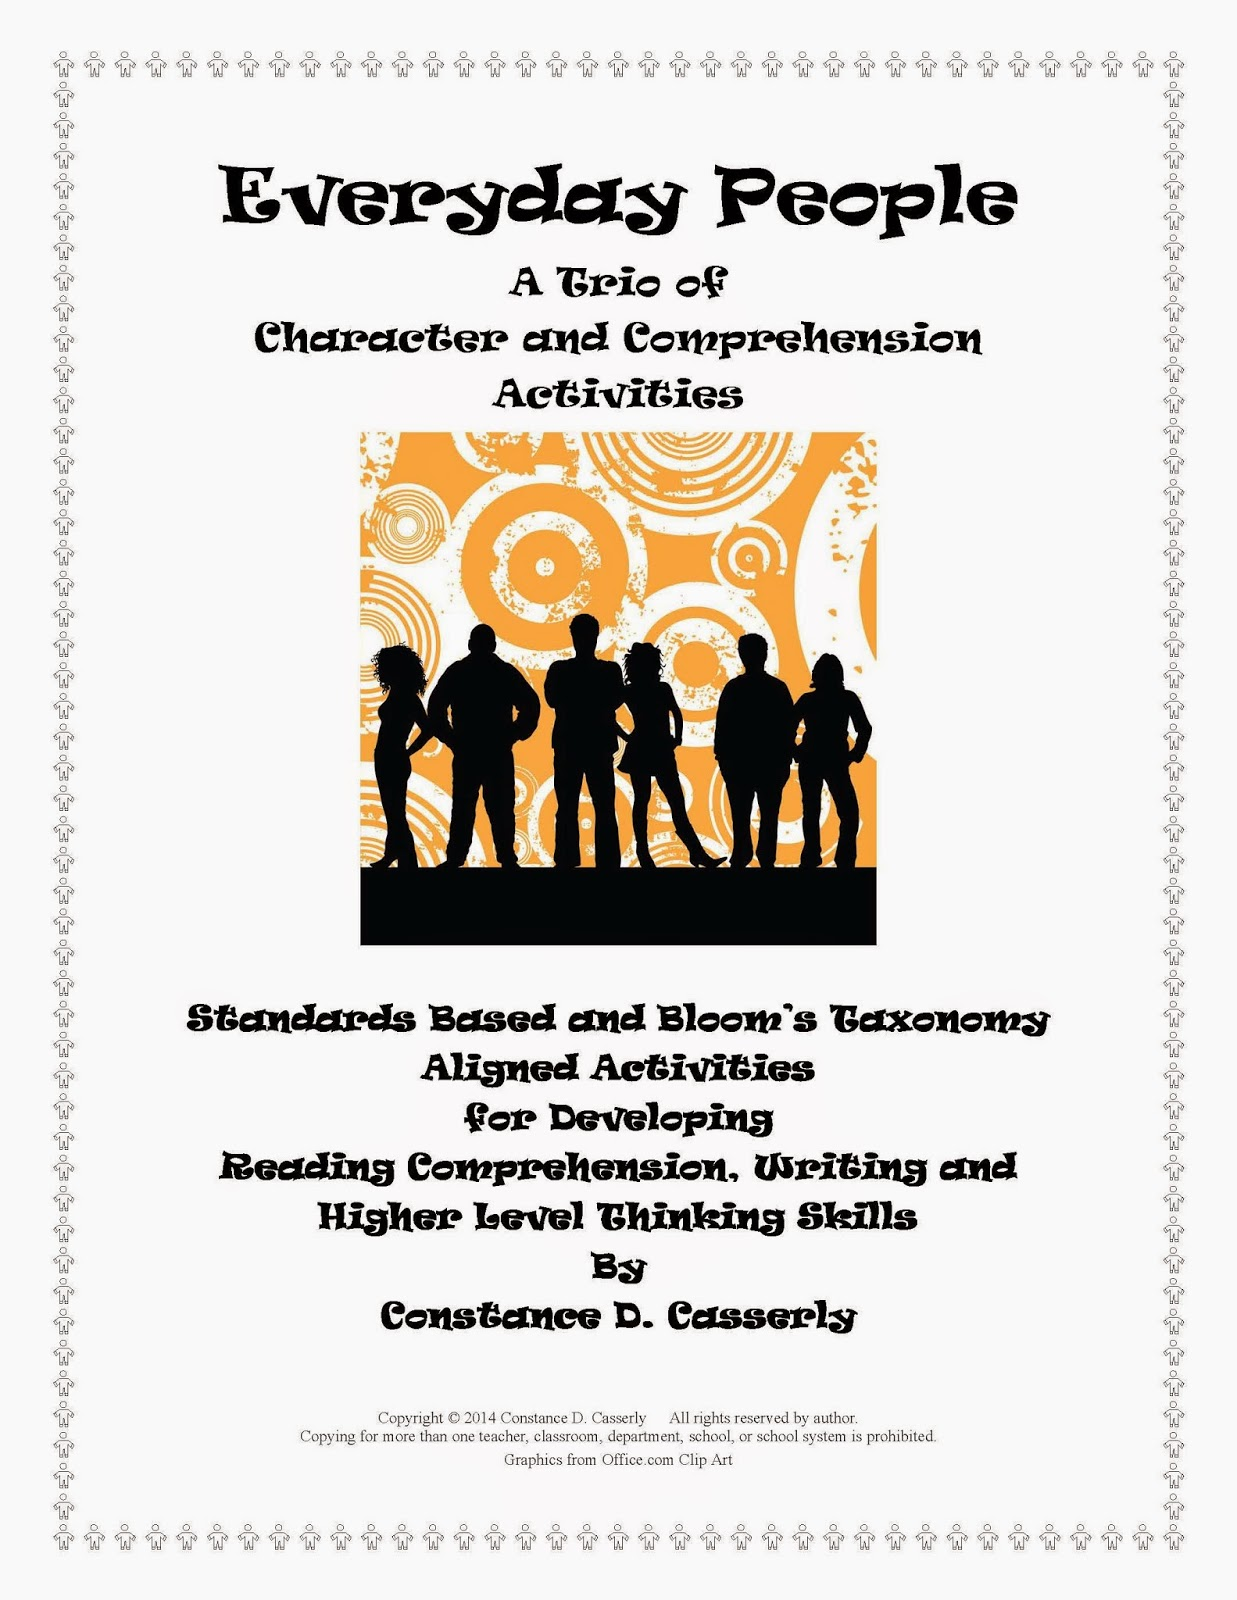 Language Arts Lessons - Everyday People A Trio of Comprehension Activities